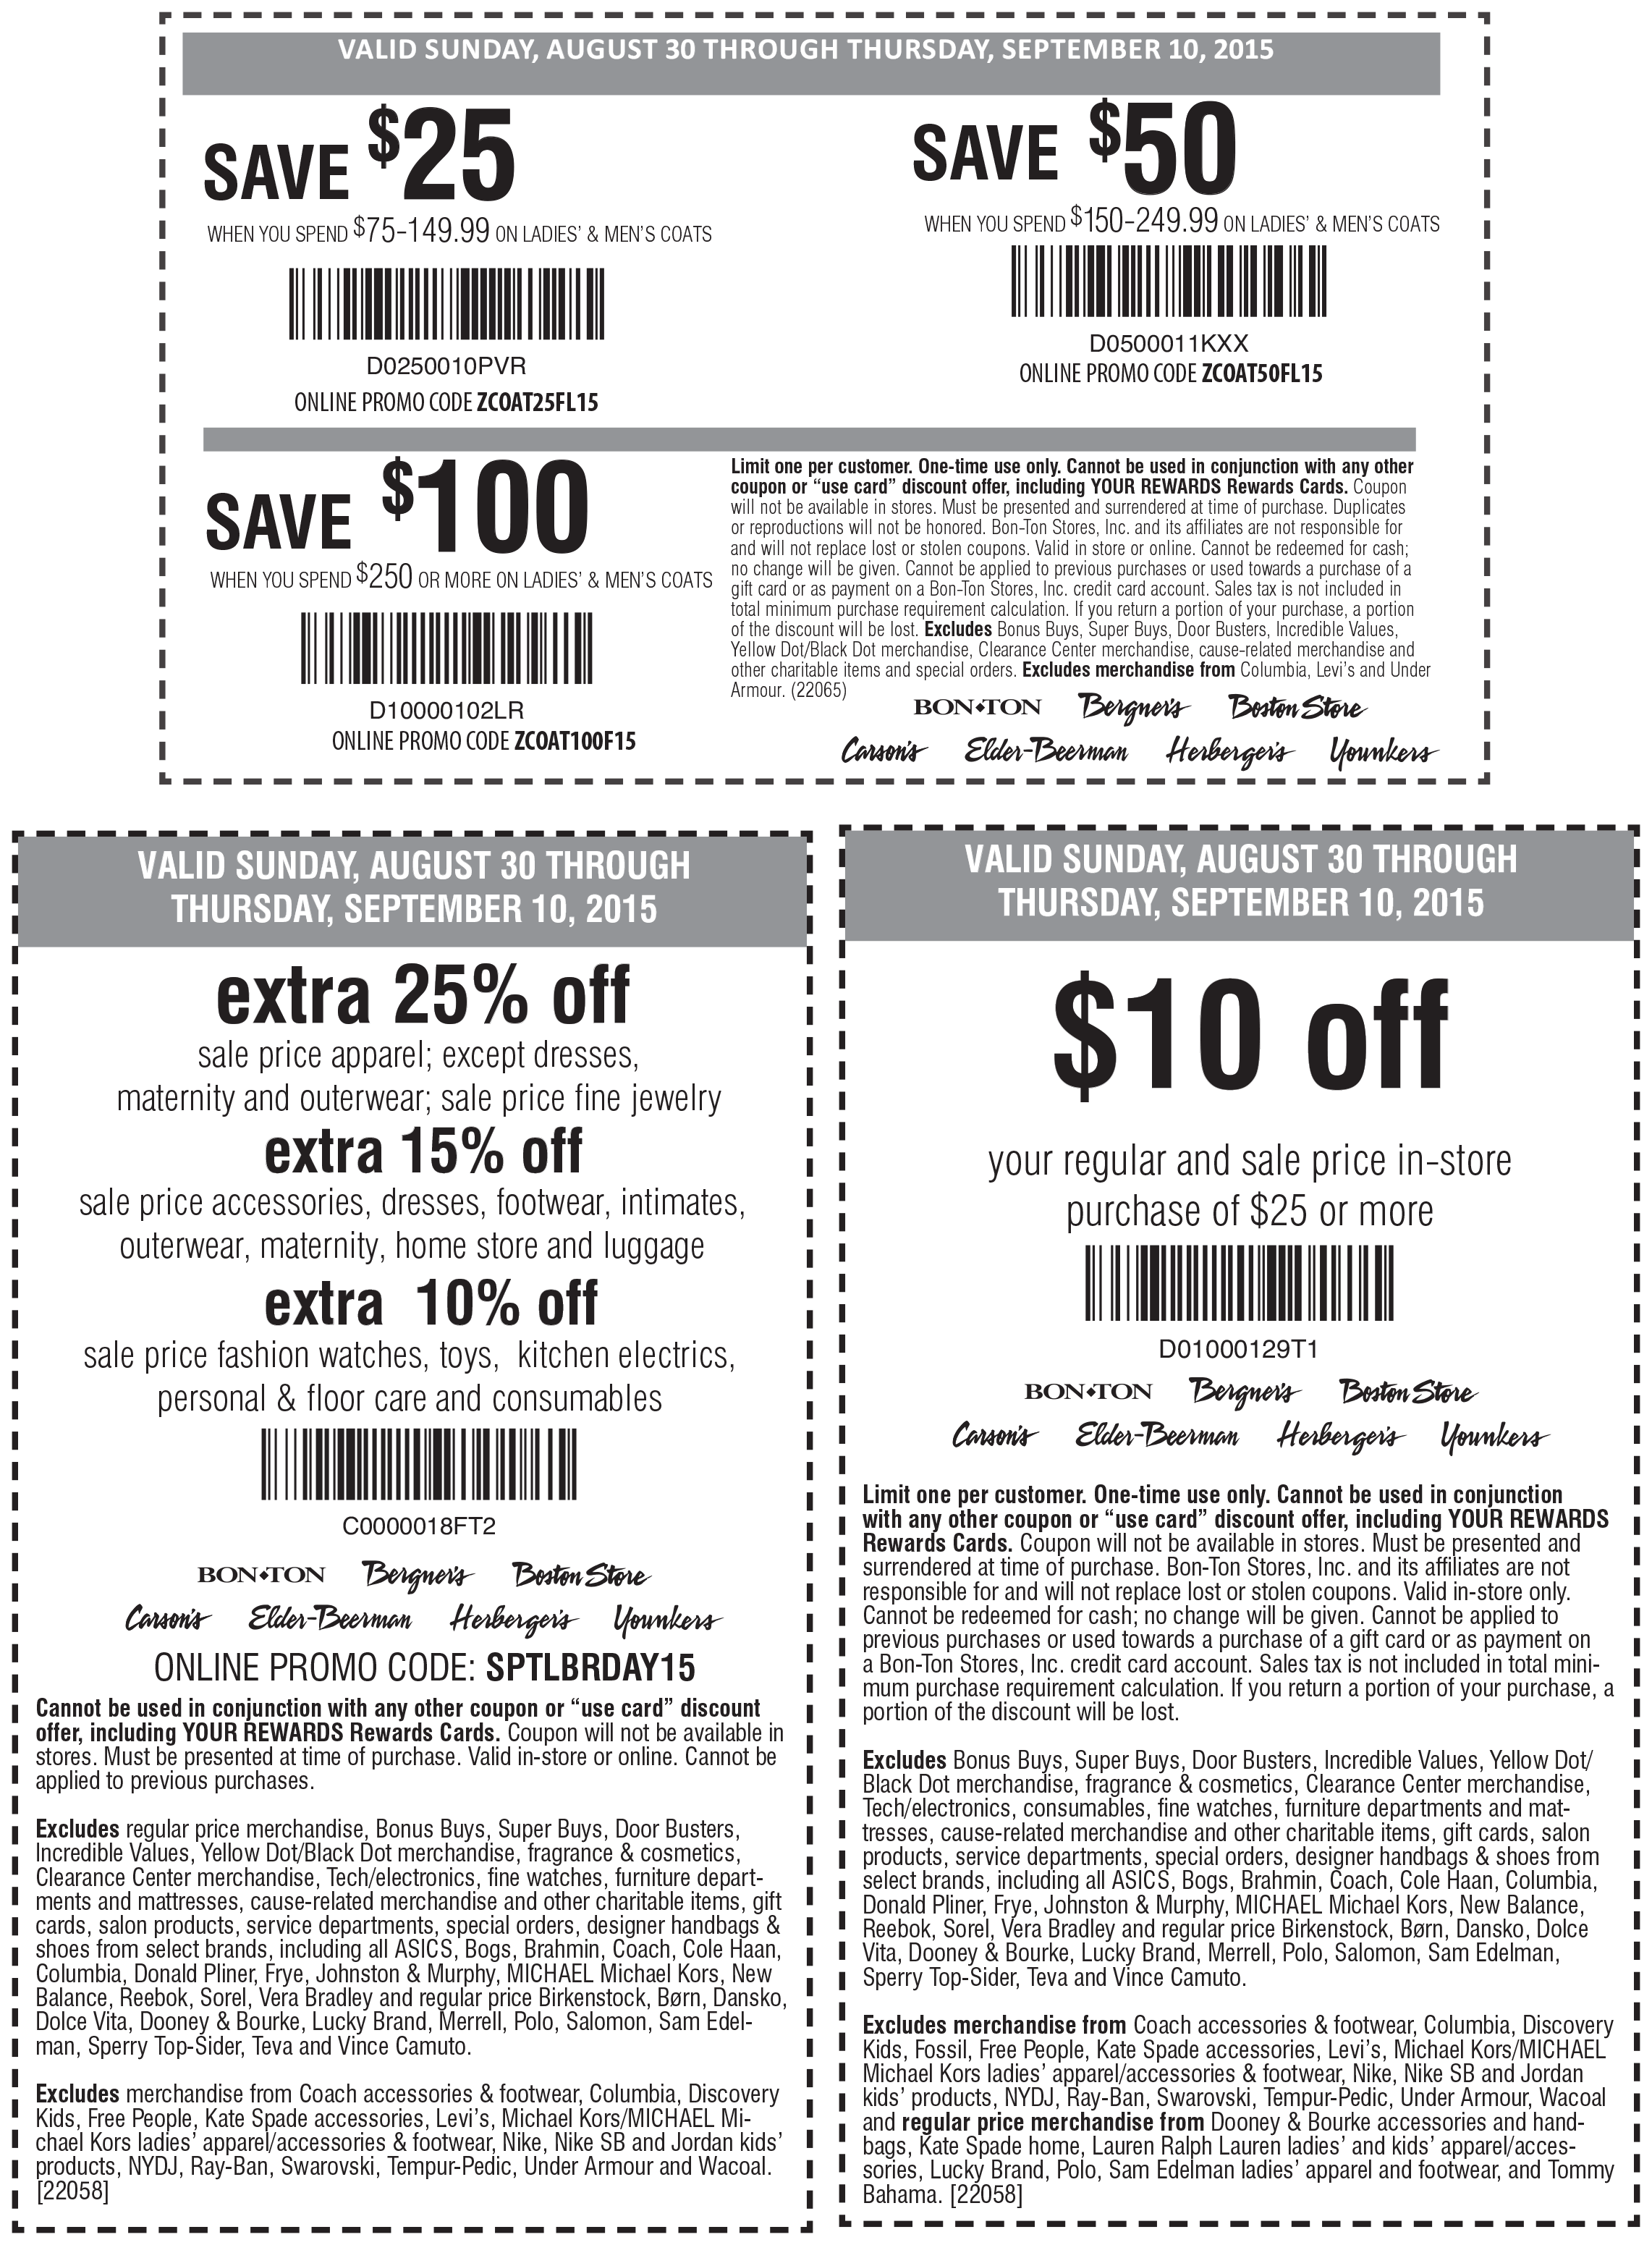 Carsons Coupon August 2017 $10 off $25 & more at Carsons, Bon Ton & sister stores, or 25% off sale online via promo code SPTLBRDAY15